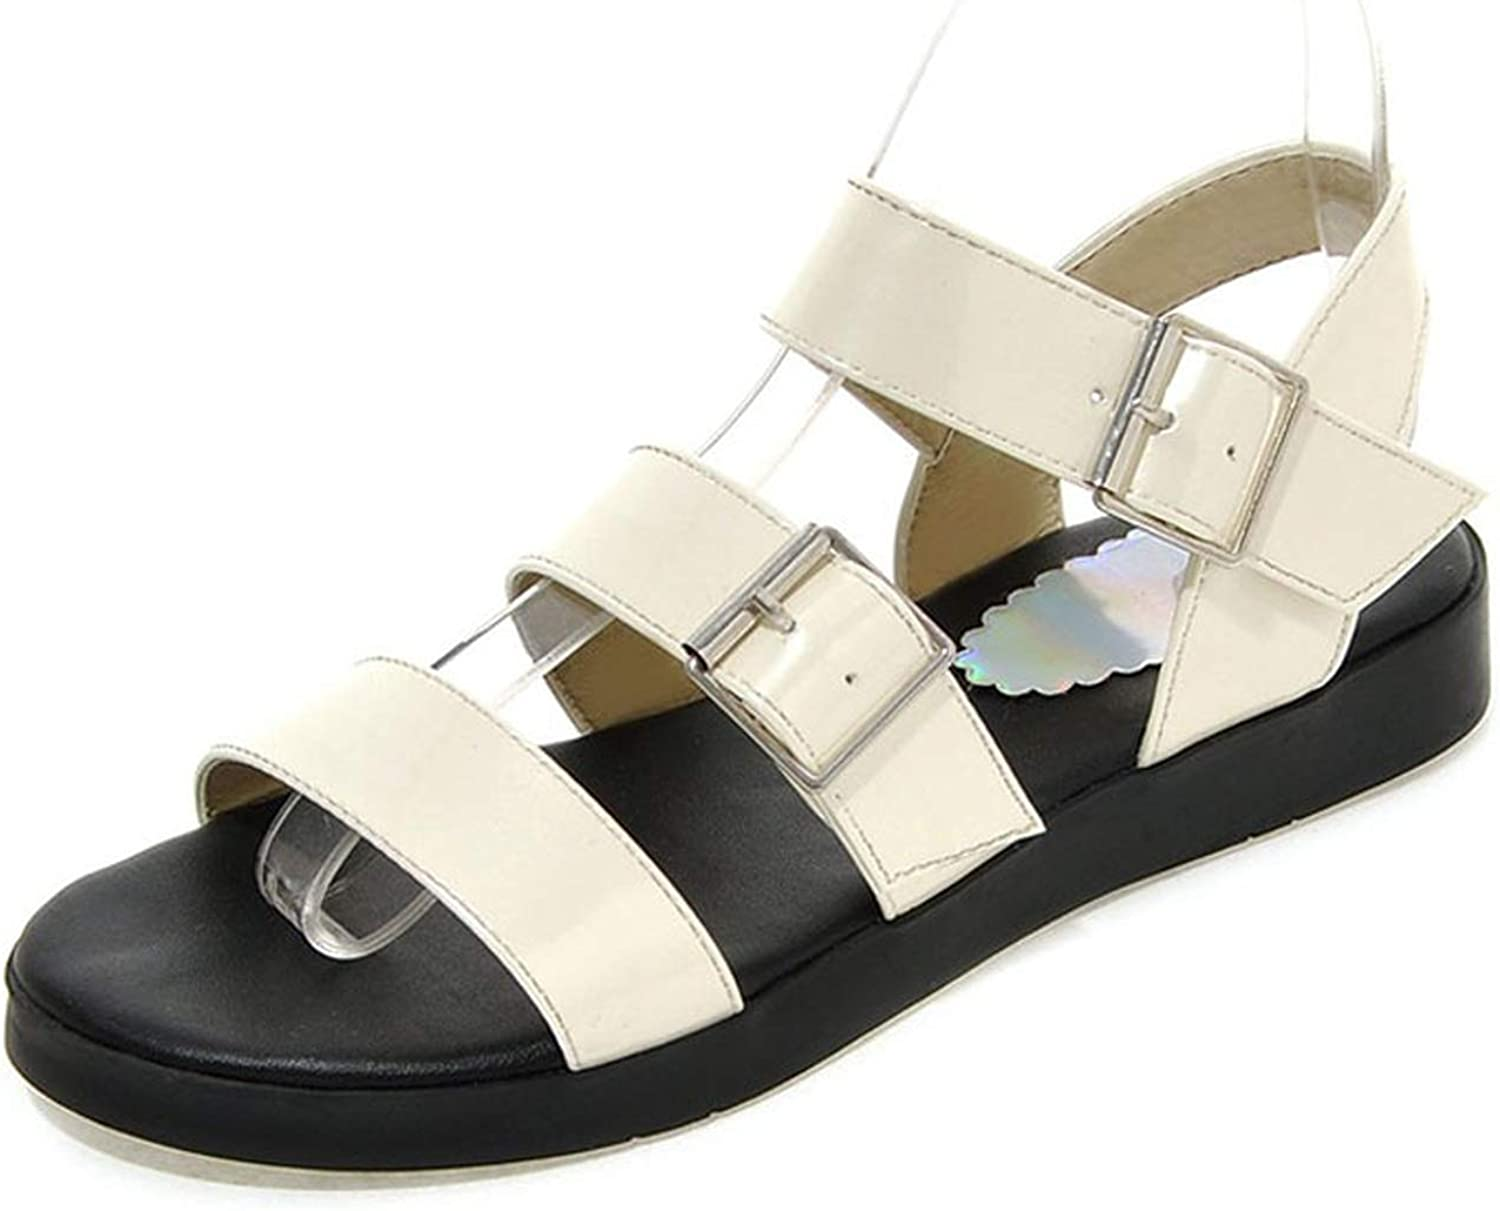 Casual Flat Sandals Concise Buckle Gladiator Sandals Women Flats Bling Women 'Summer shoes Lady Girls Footwear